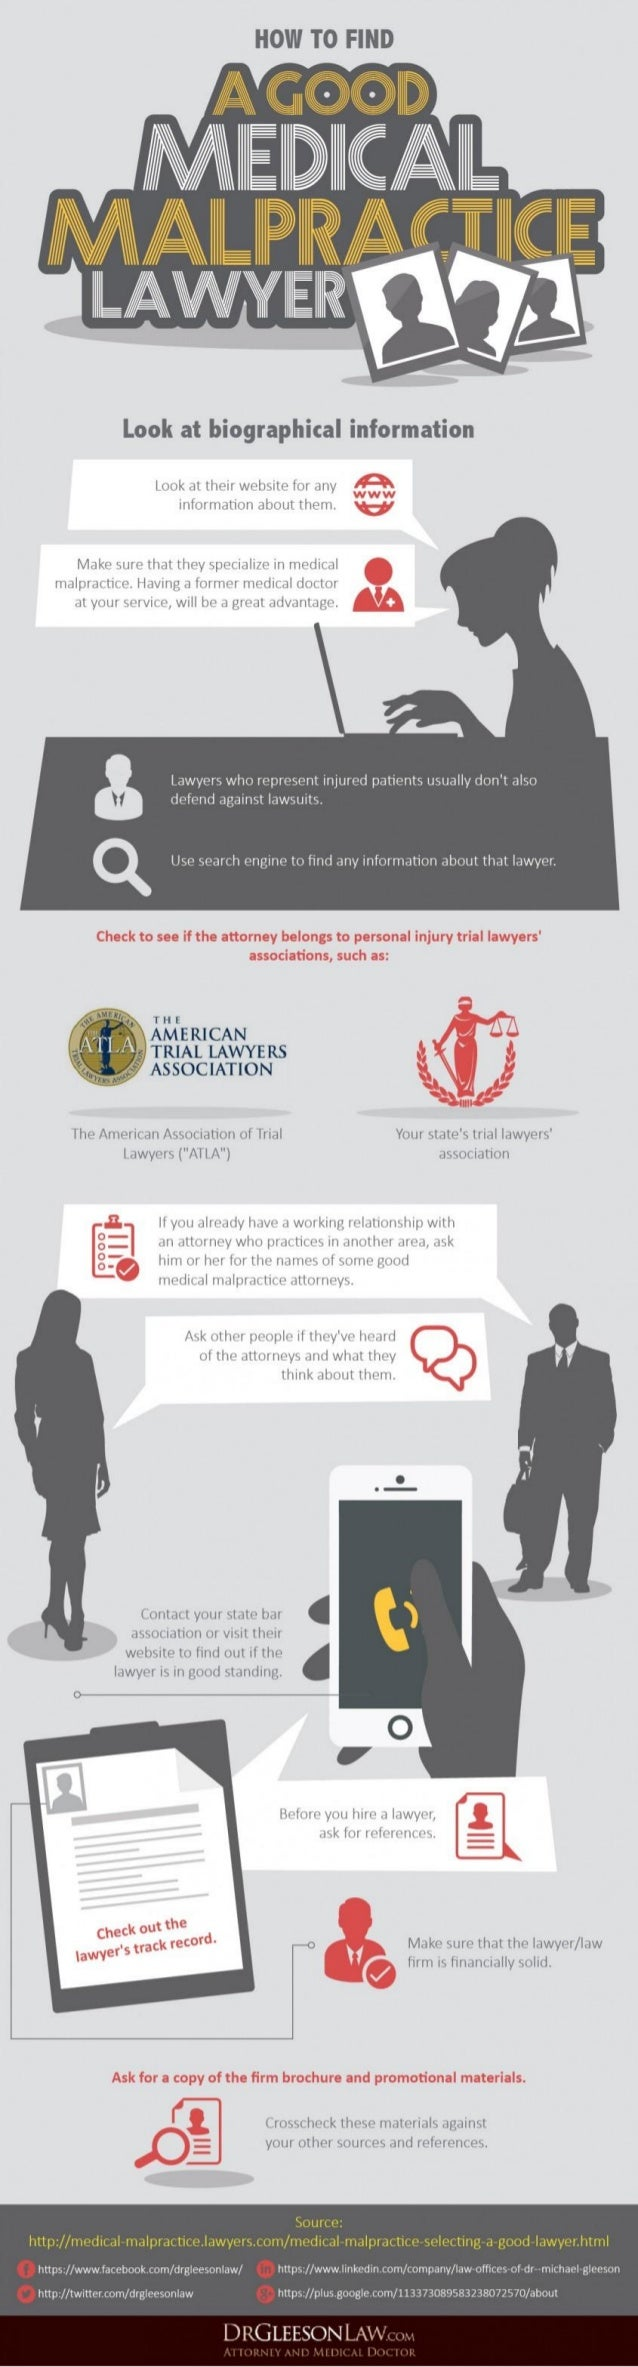 How To Find A Good Medical Malpratice Lawyer